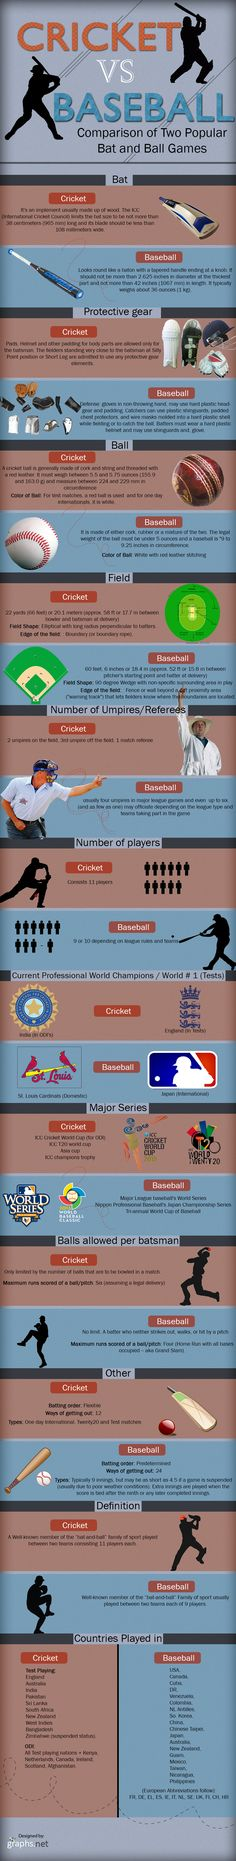 Difference Between Cricket and Baseball Infographic